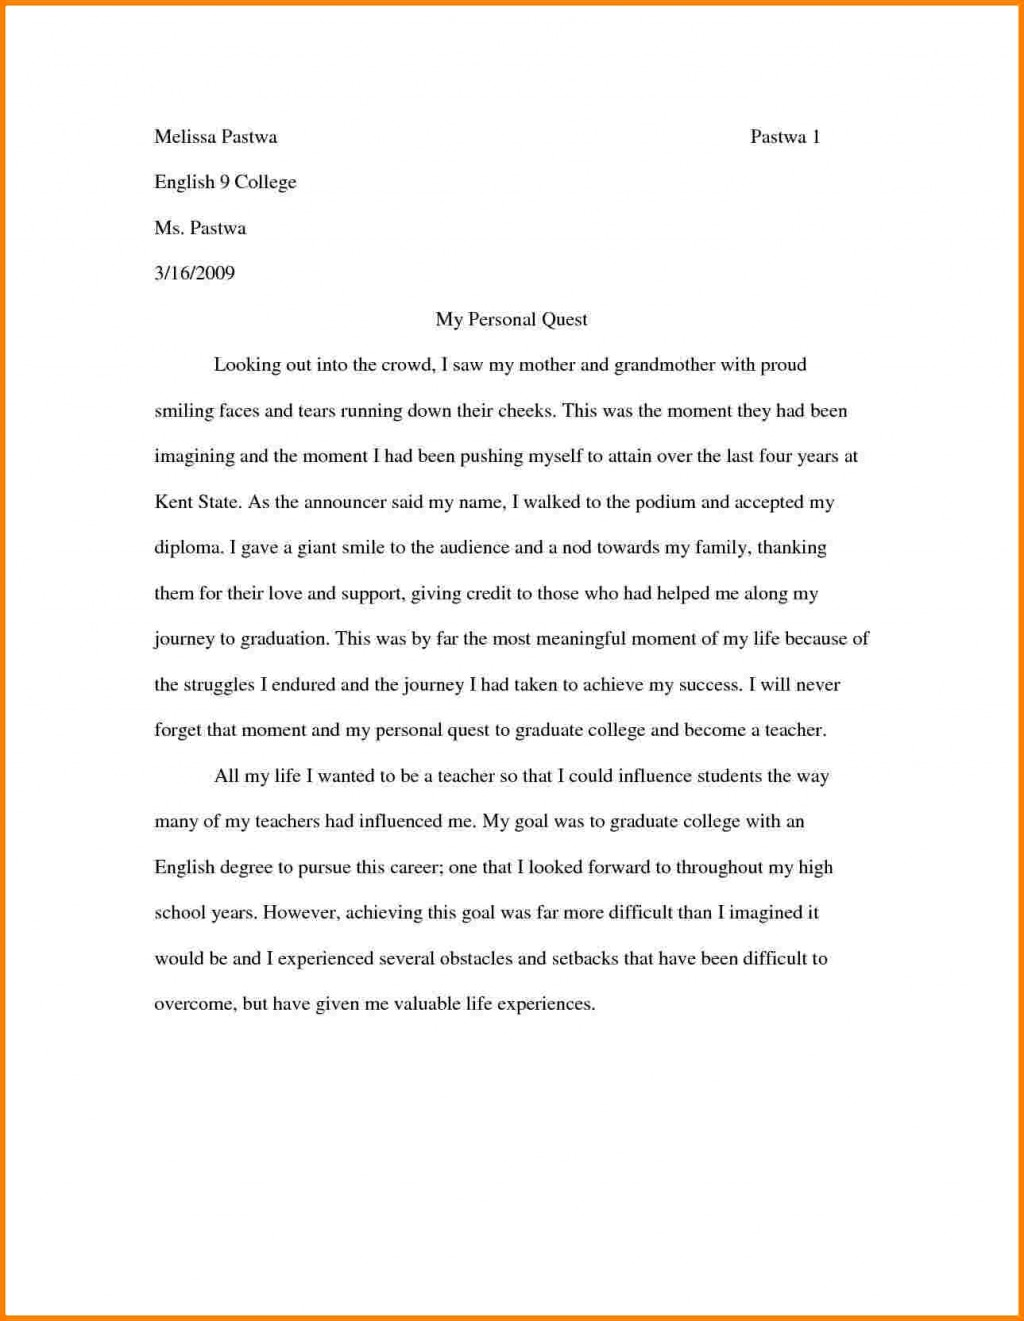 020 3341381556 How To Write Proposal20nt Essay Topics Buy Researchs Cheap Examples20 Good For Awesome Research Papers Middle School Economic Paper Interesting In The Philippines Large